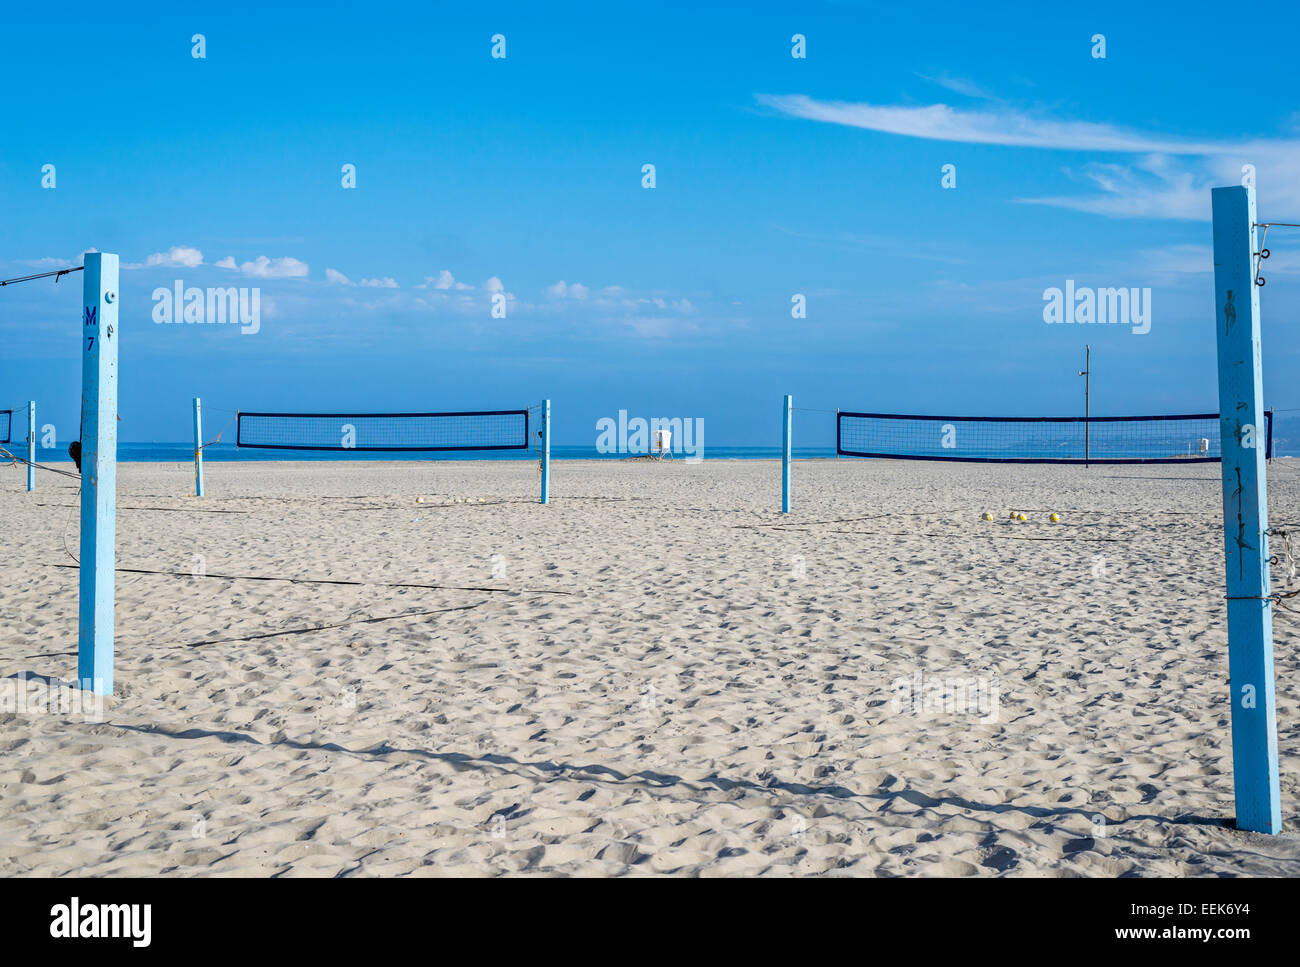 Beach Volleyball Courts South Mission Beach San Diego California Stock Photo Alamy